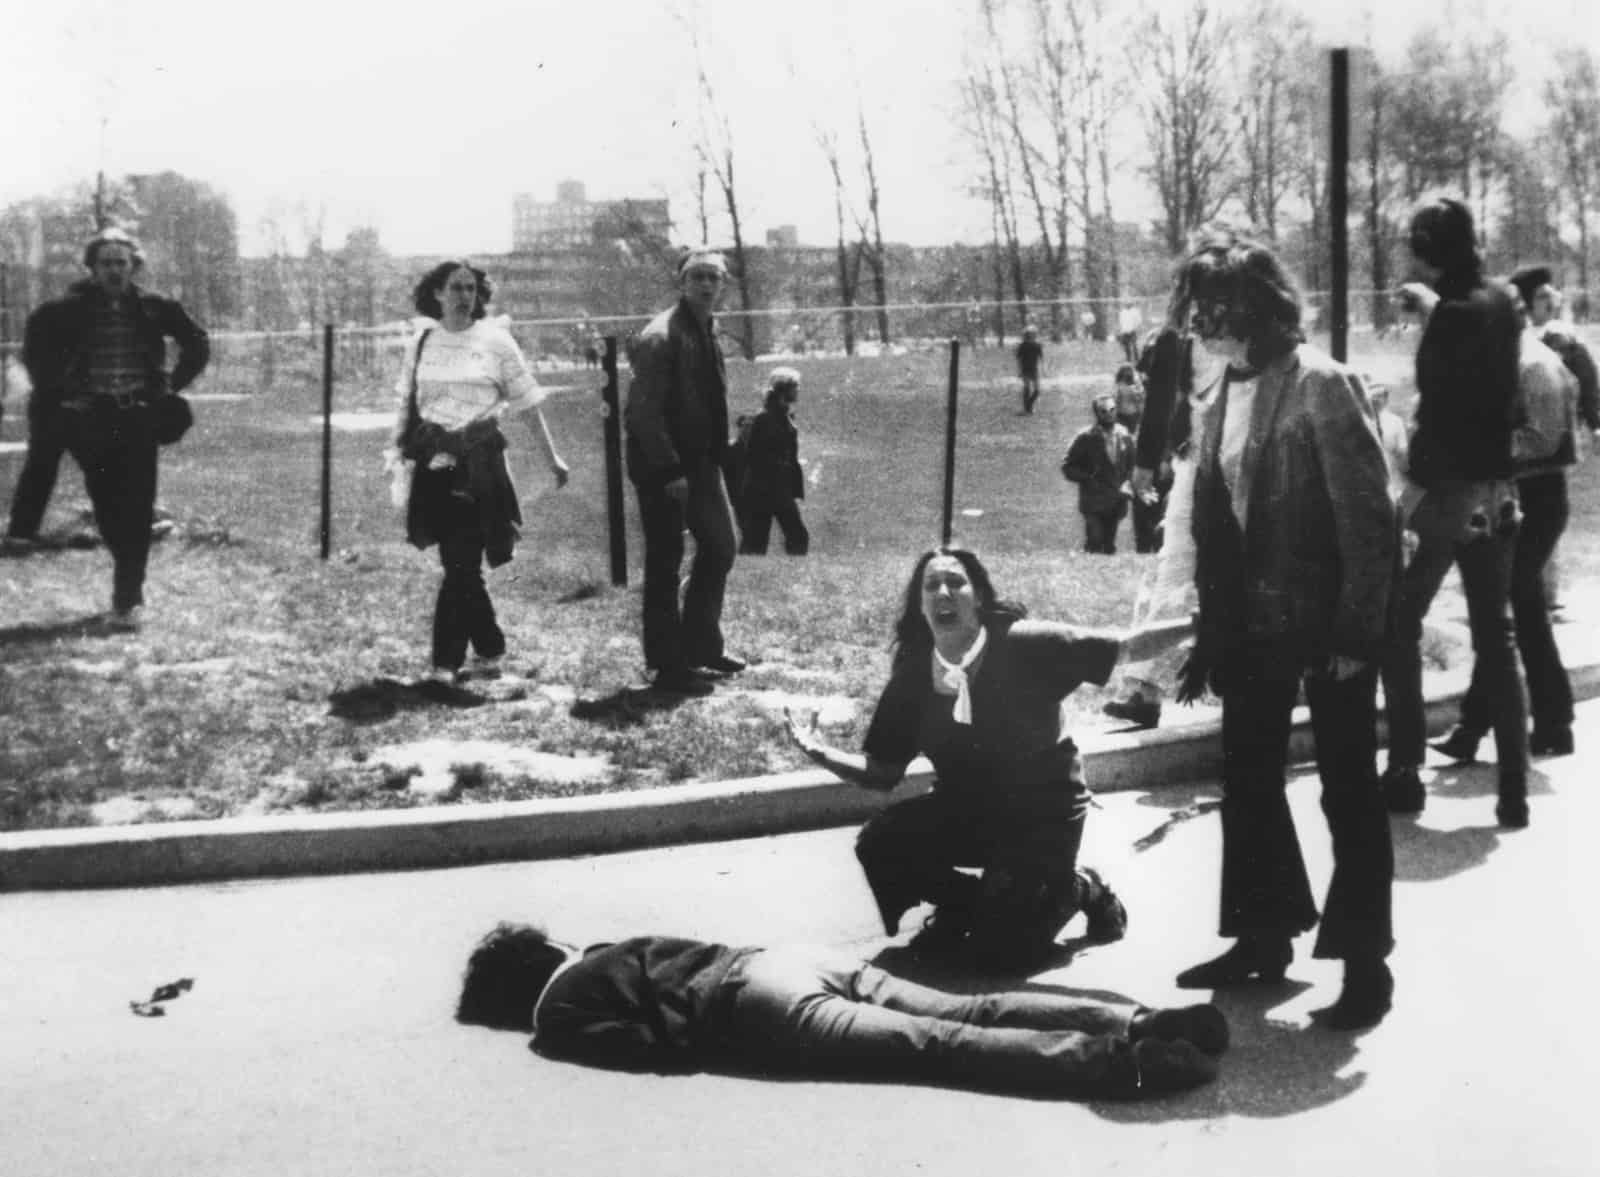 May 4, 1970: 48 Years. Never Forget.